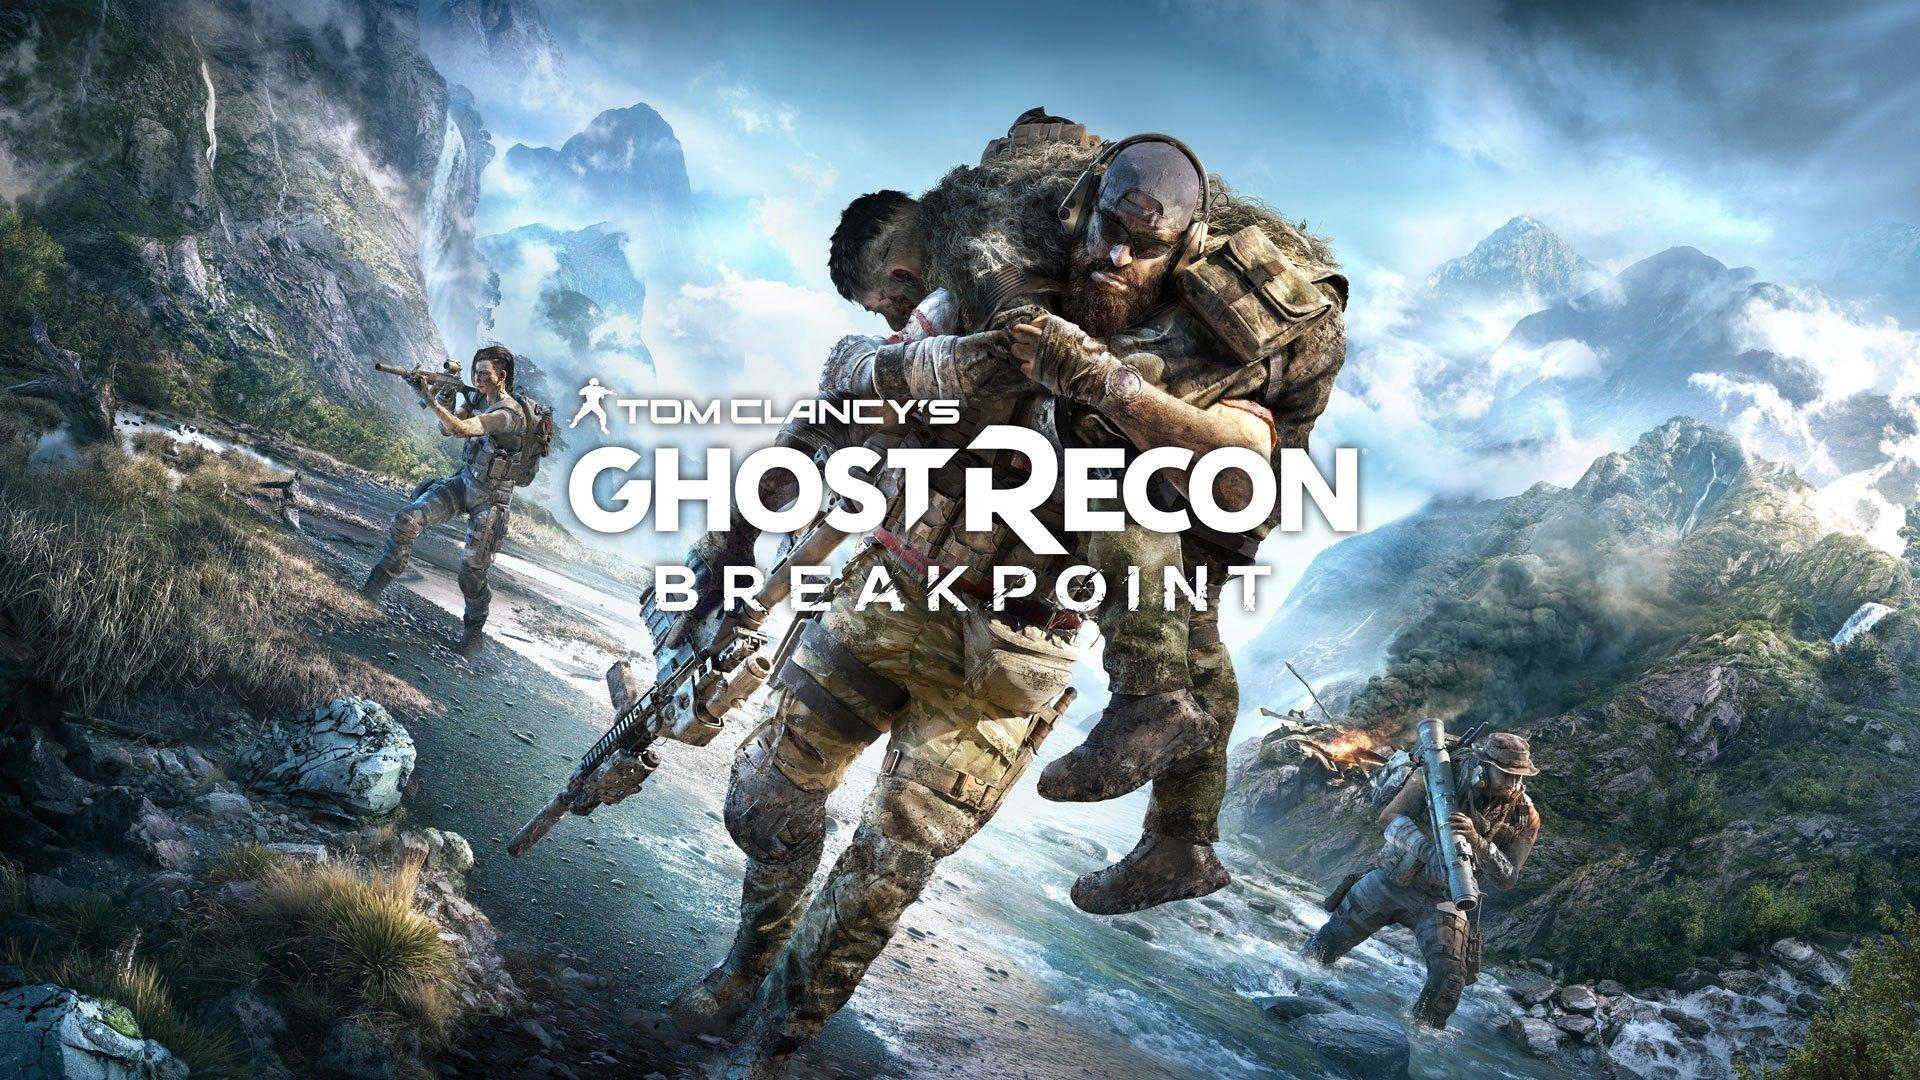 Bildergebnis für ghost recon breakpoint wallpaper